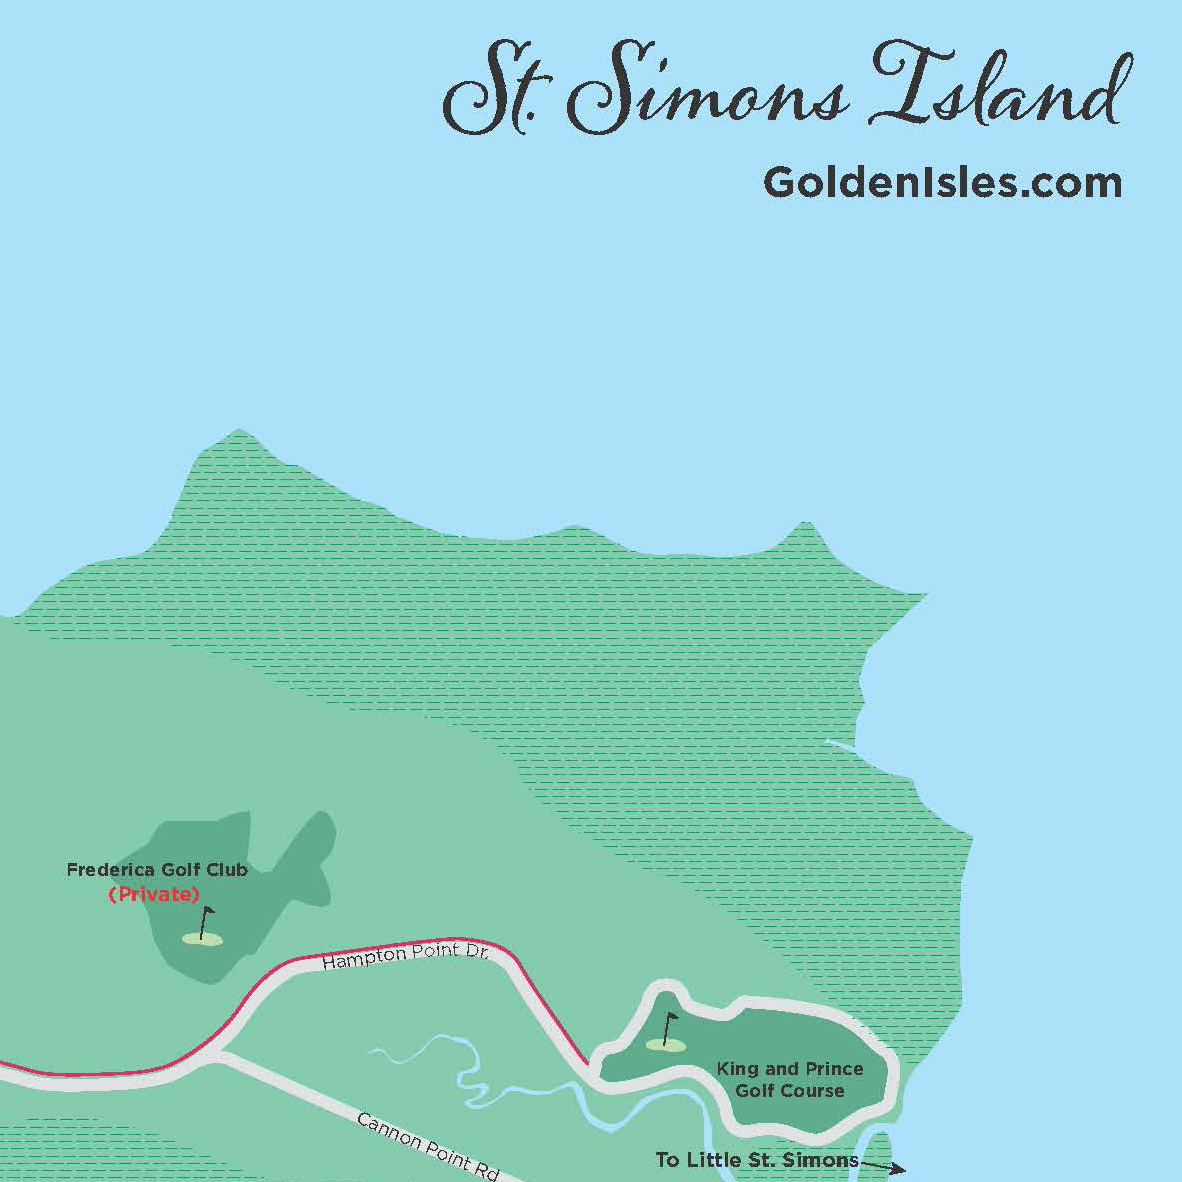 Golden Isles Maps | Golden Isles, Georgia - Printable Map Of St Simons Island Ga